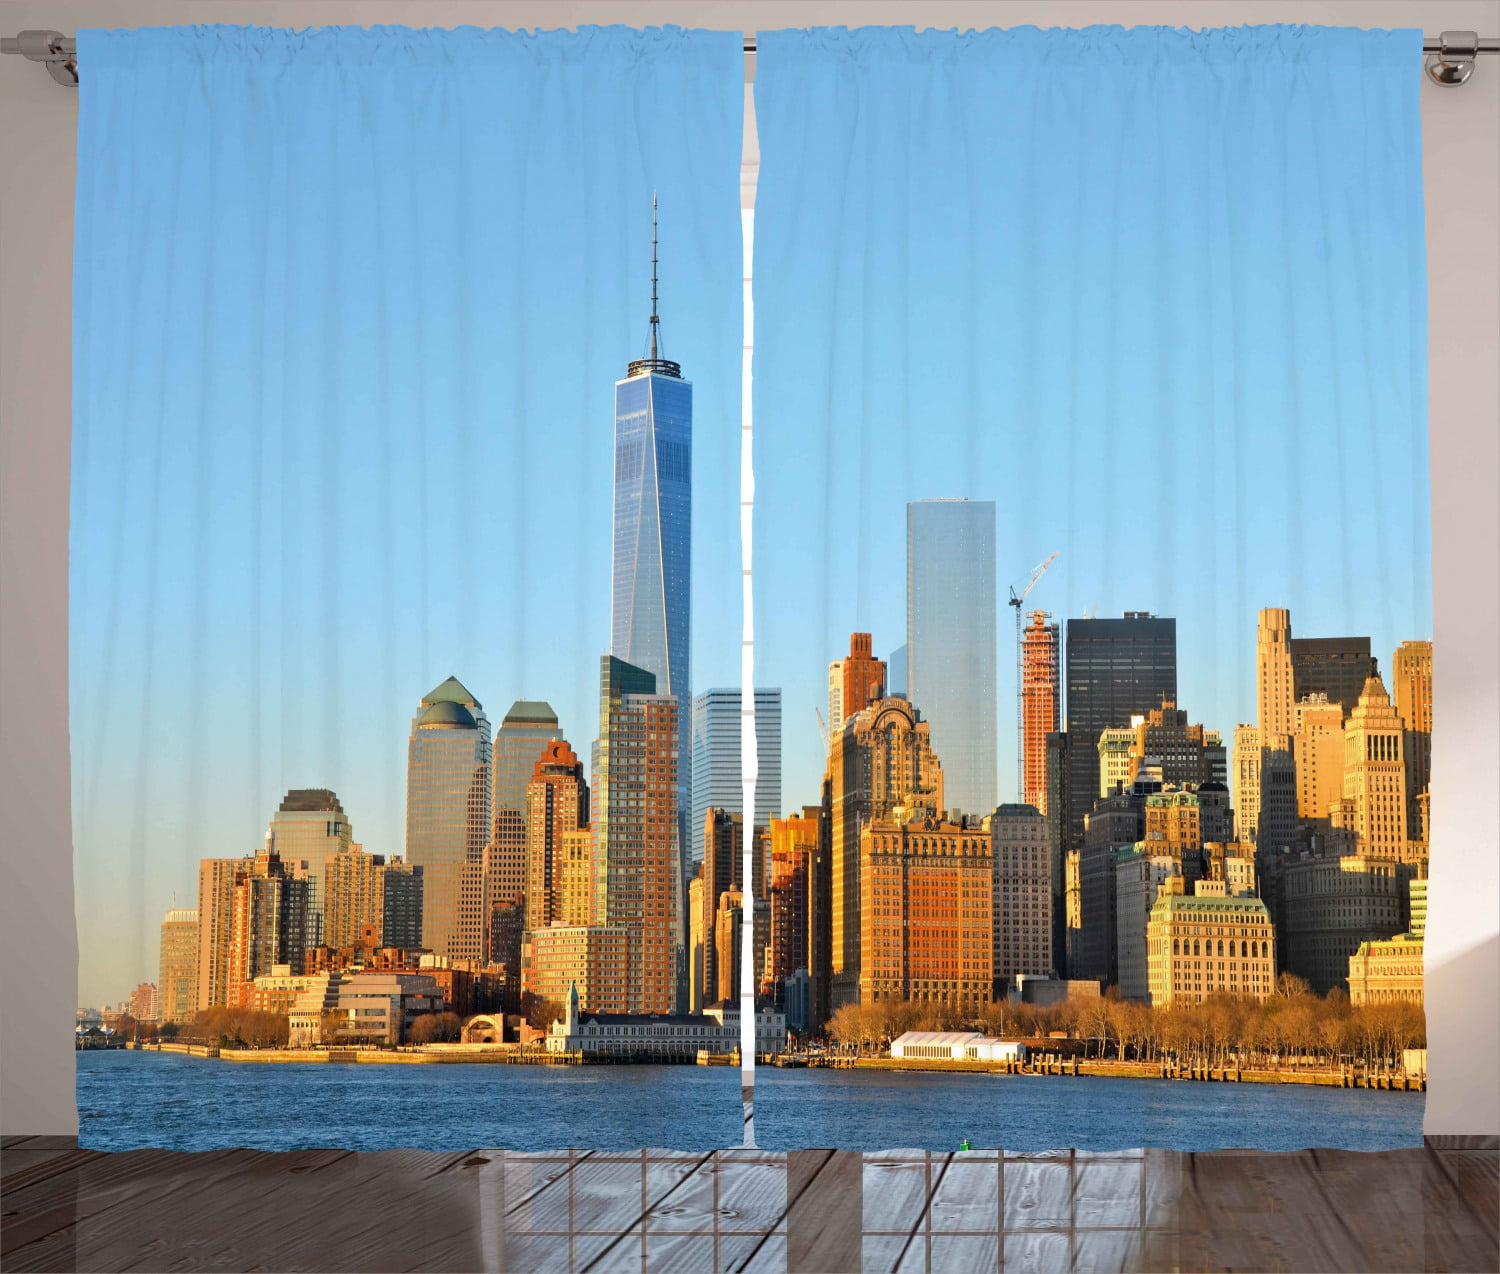 Landscape Curtains 2 Panels Set New York City Skyline Usa Landmark Buildings Skyscrapers Modern Urban Life Window Drapes For Living Room Bedroom 108w X 96l Inches Pale Blue Orange By Ambesonne